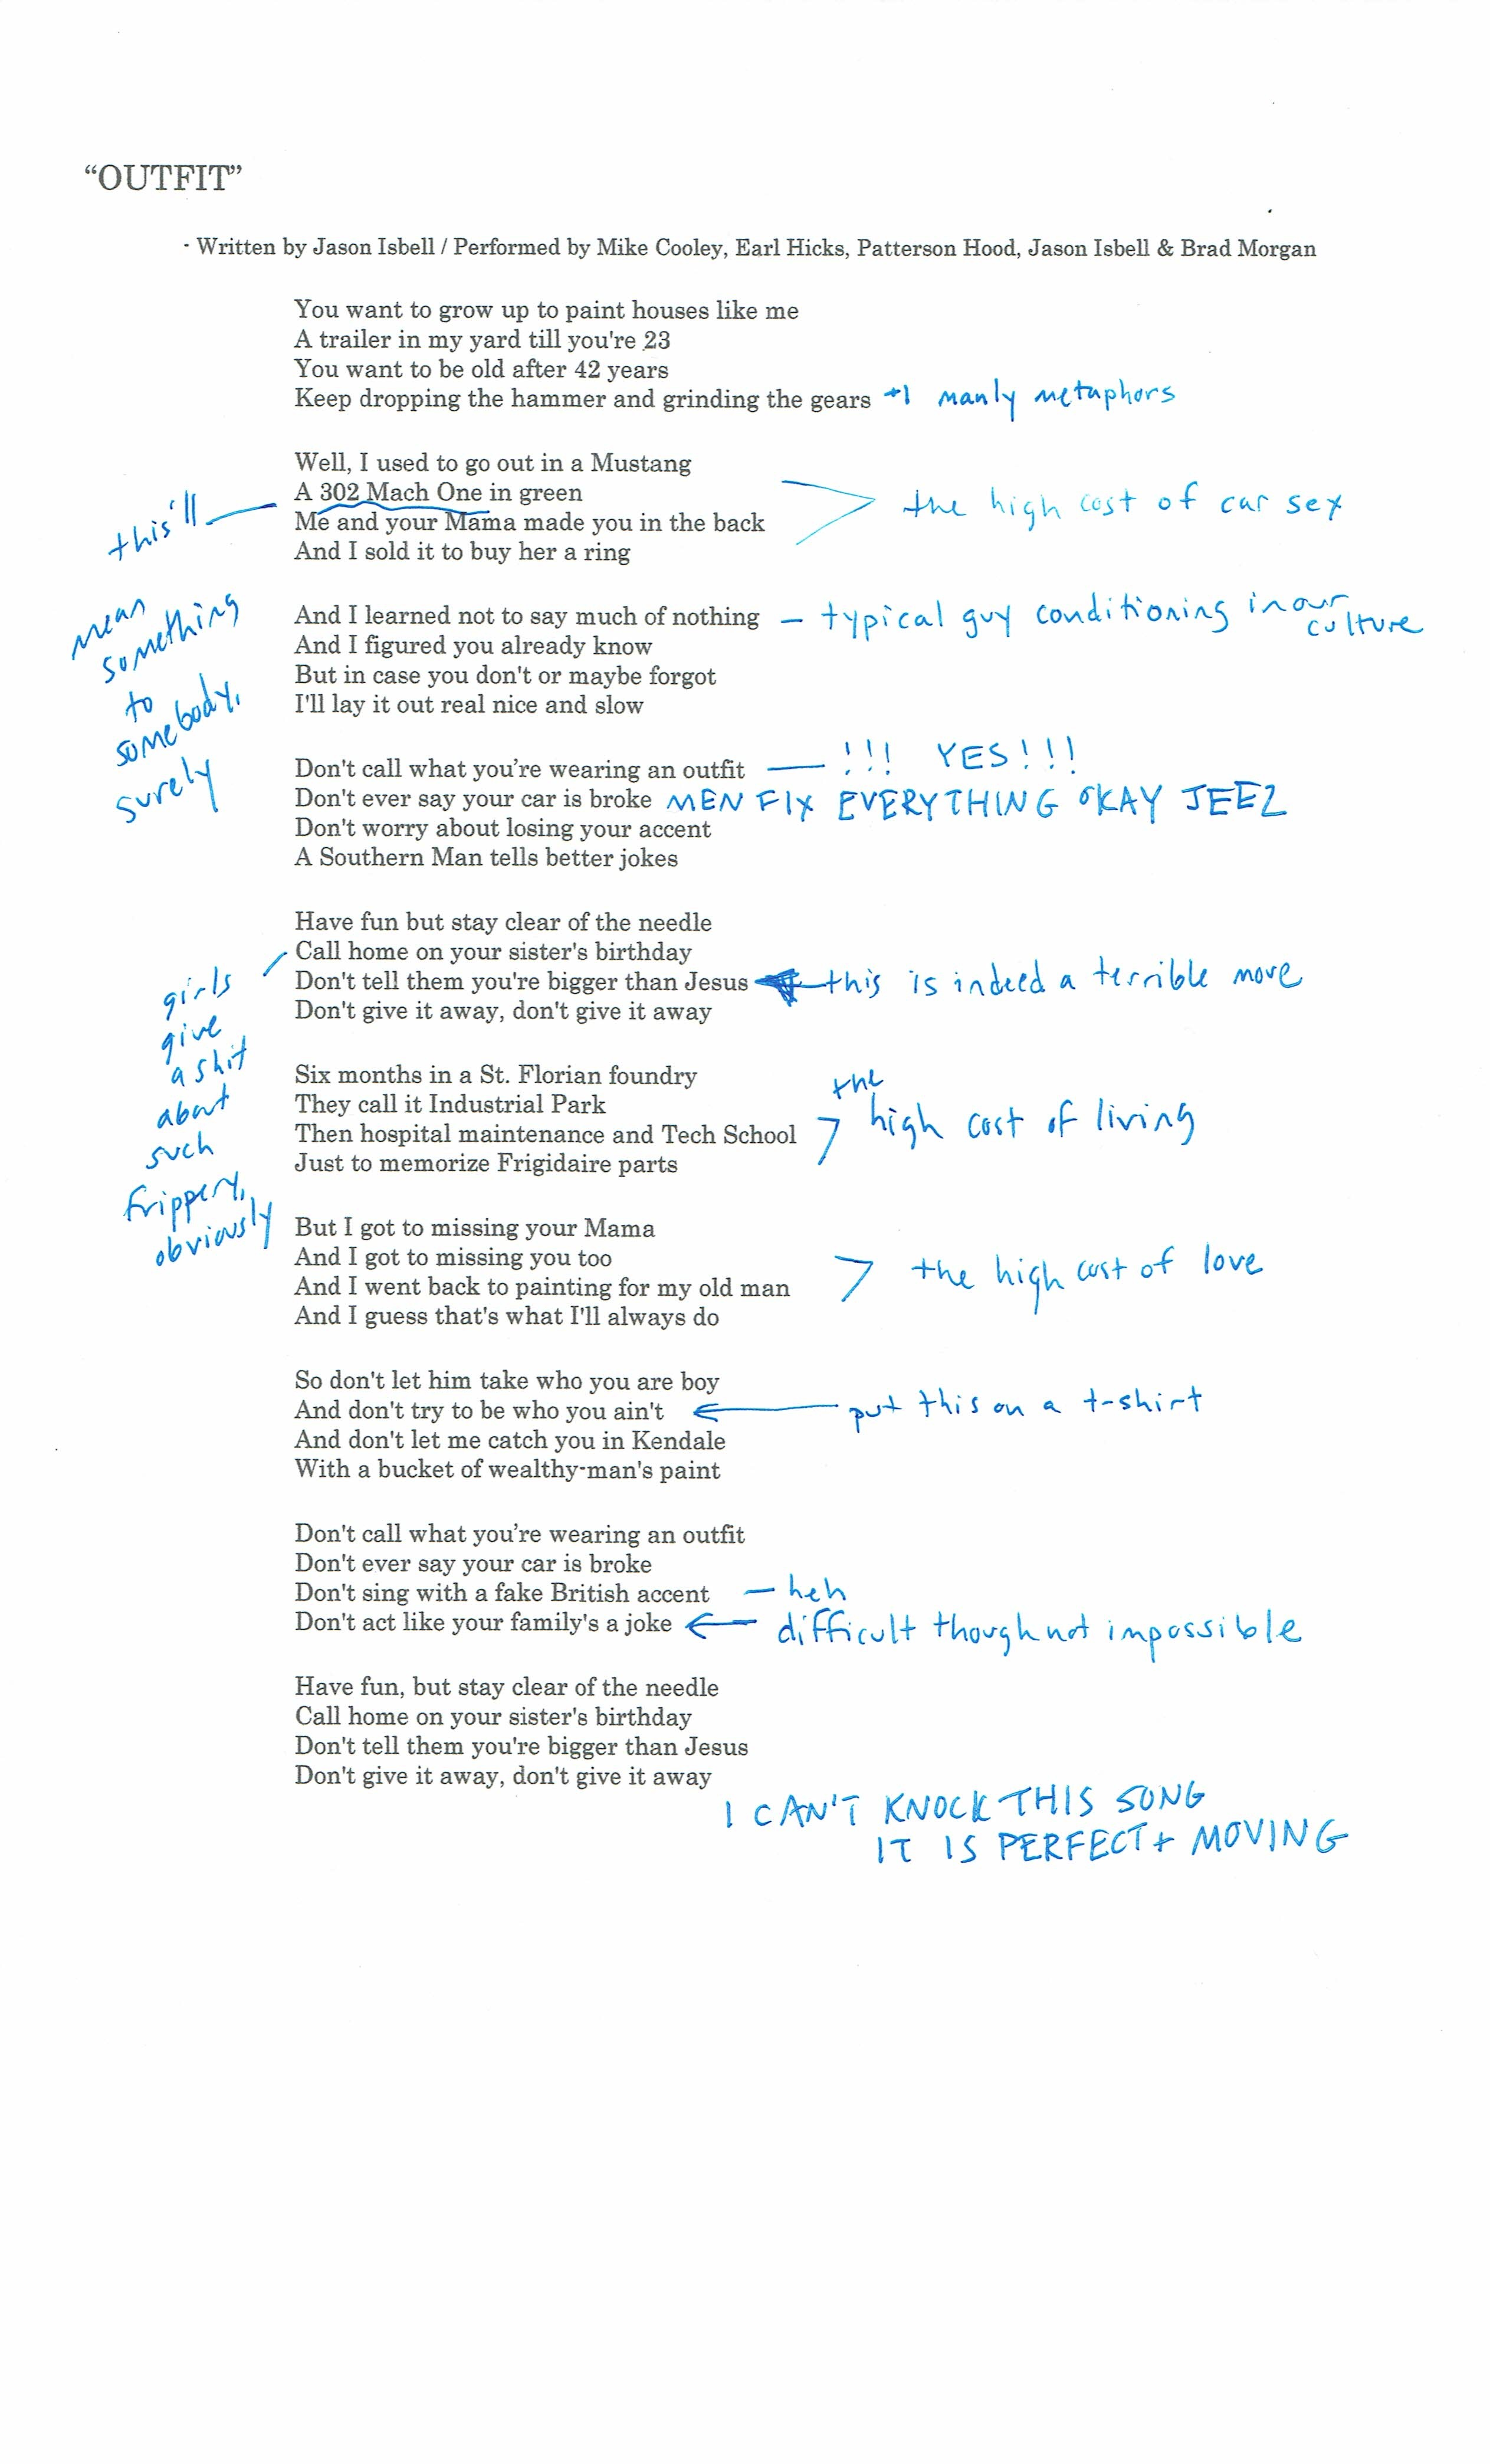 Anatomy of a Country Music Song Part VIII